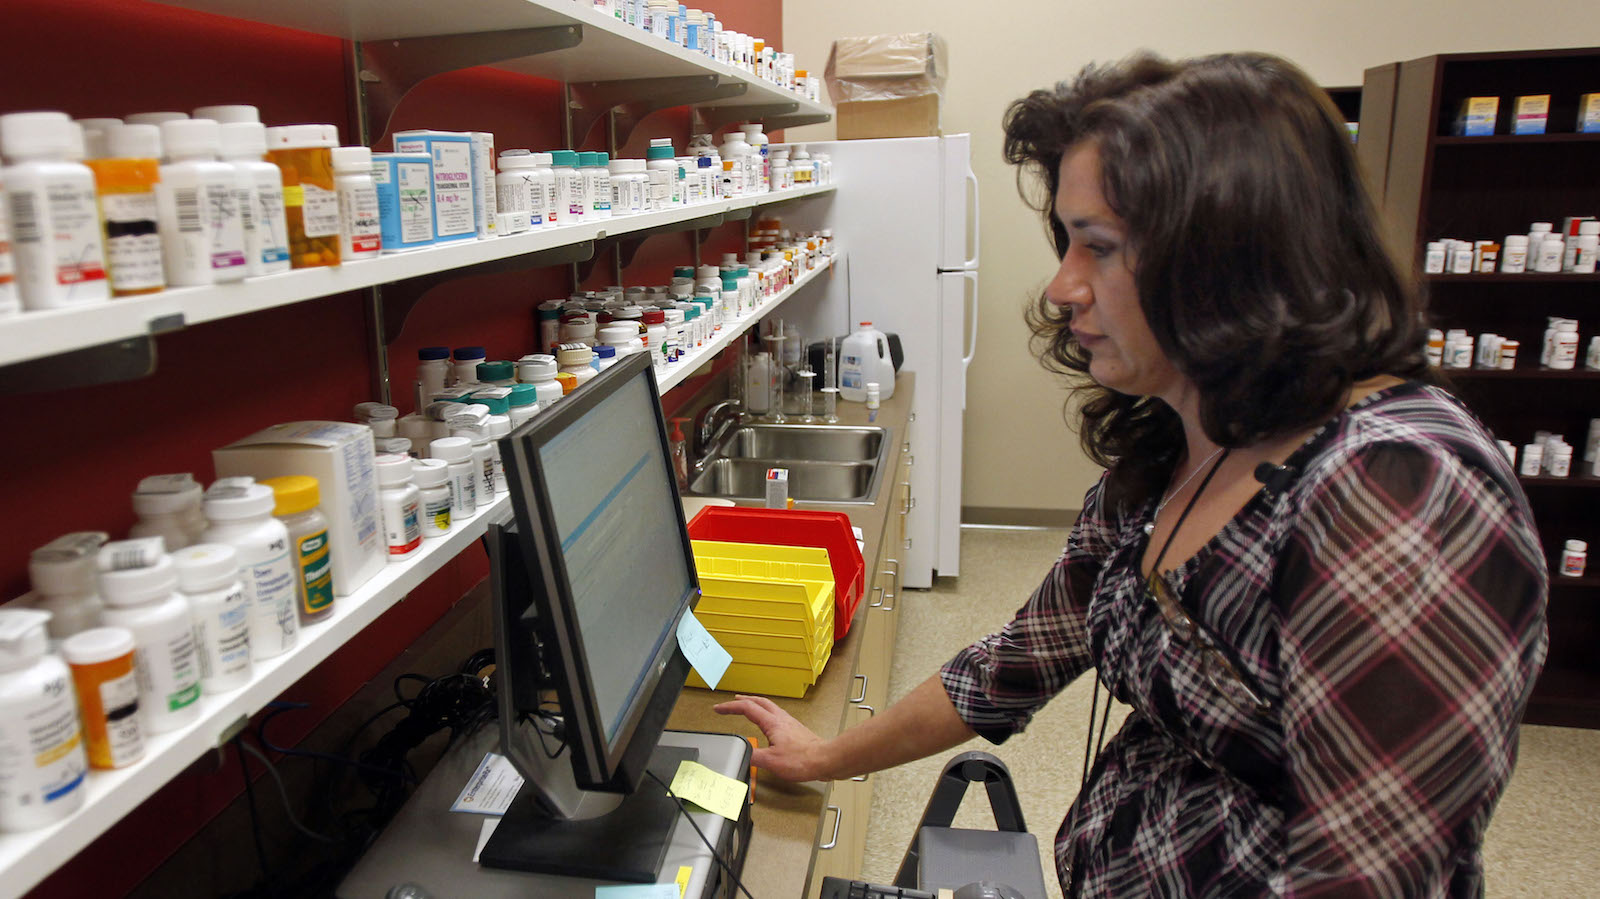 In this Jan. 24, 2012 photo, Terri Kroh, the director of pharmacy services at Duquesne University's Center for Pharmacy Services fills a prescription at the store in the Hill District of Pittsburgh. Duquesne has stepped in to fill a difficult role — delivering basic health care and medications in a poor inner city neighborhood. The school says the program is the first of its kind in the nation, and they hope it will be a model for other inner cities. ()